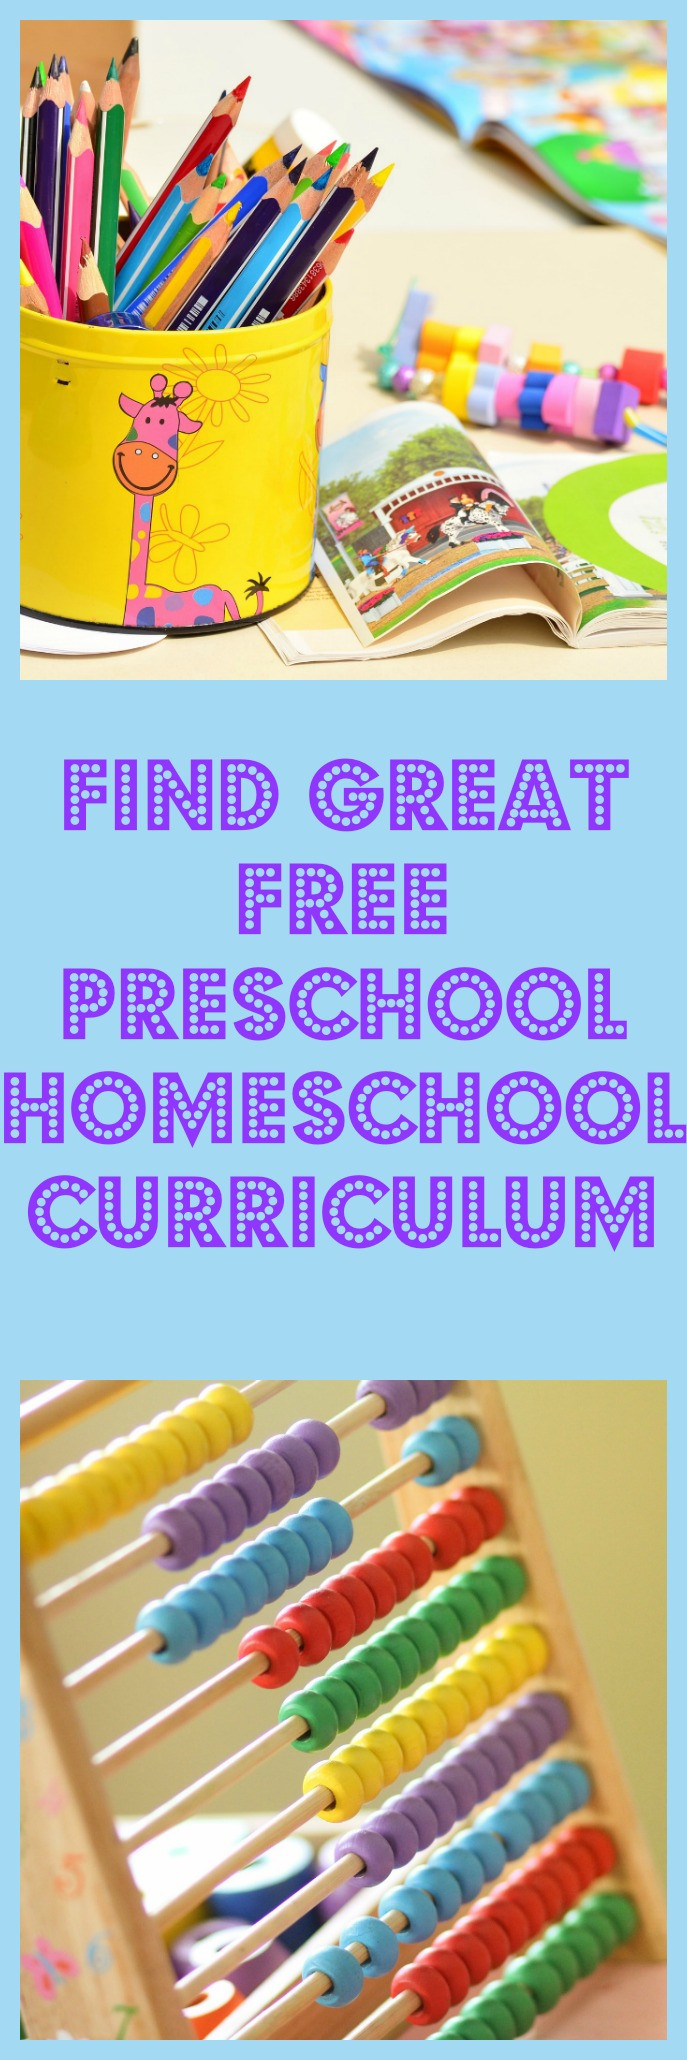 Preschool Palace Curriculum Find Great Free Preschool Homeschool Curriculum to Teach A